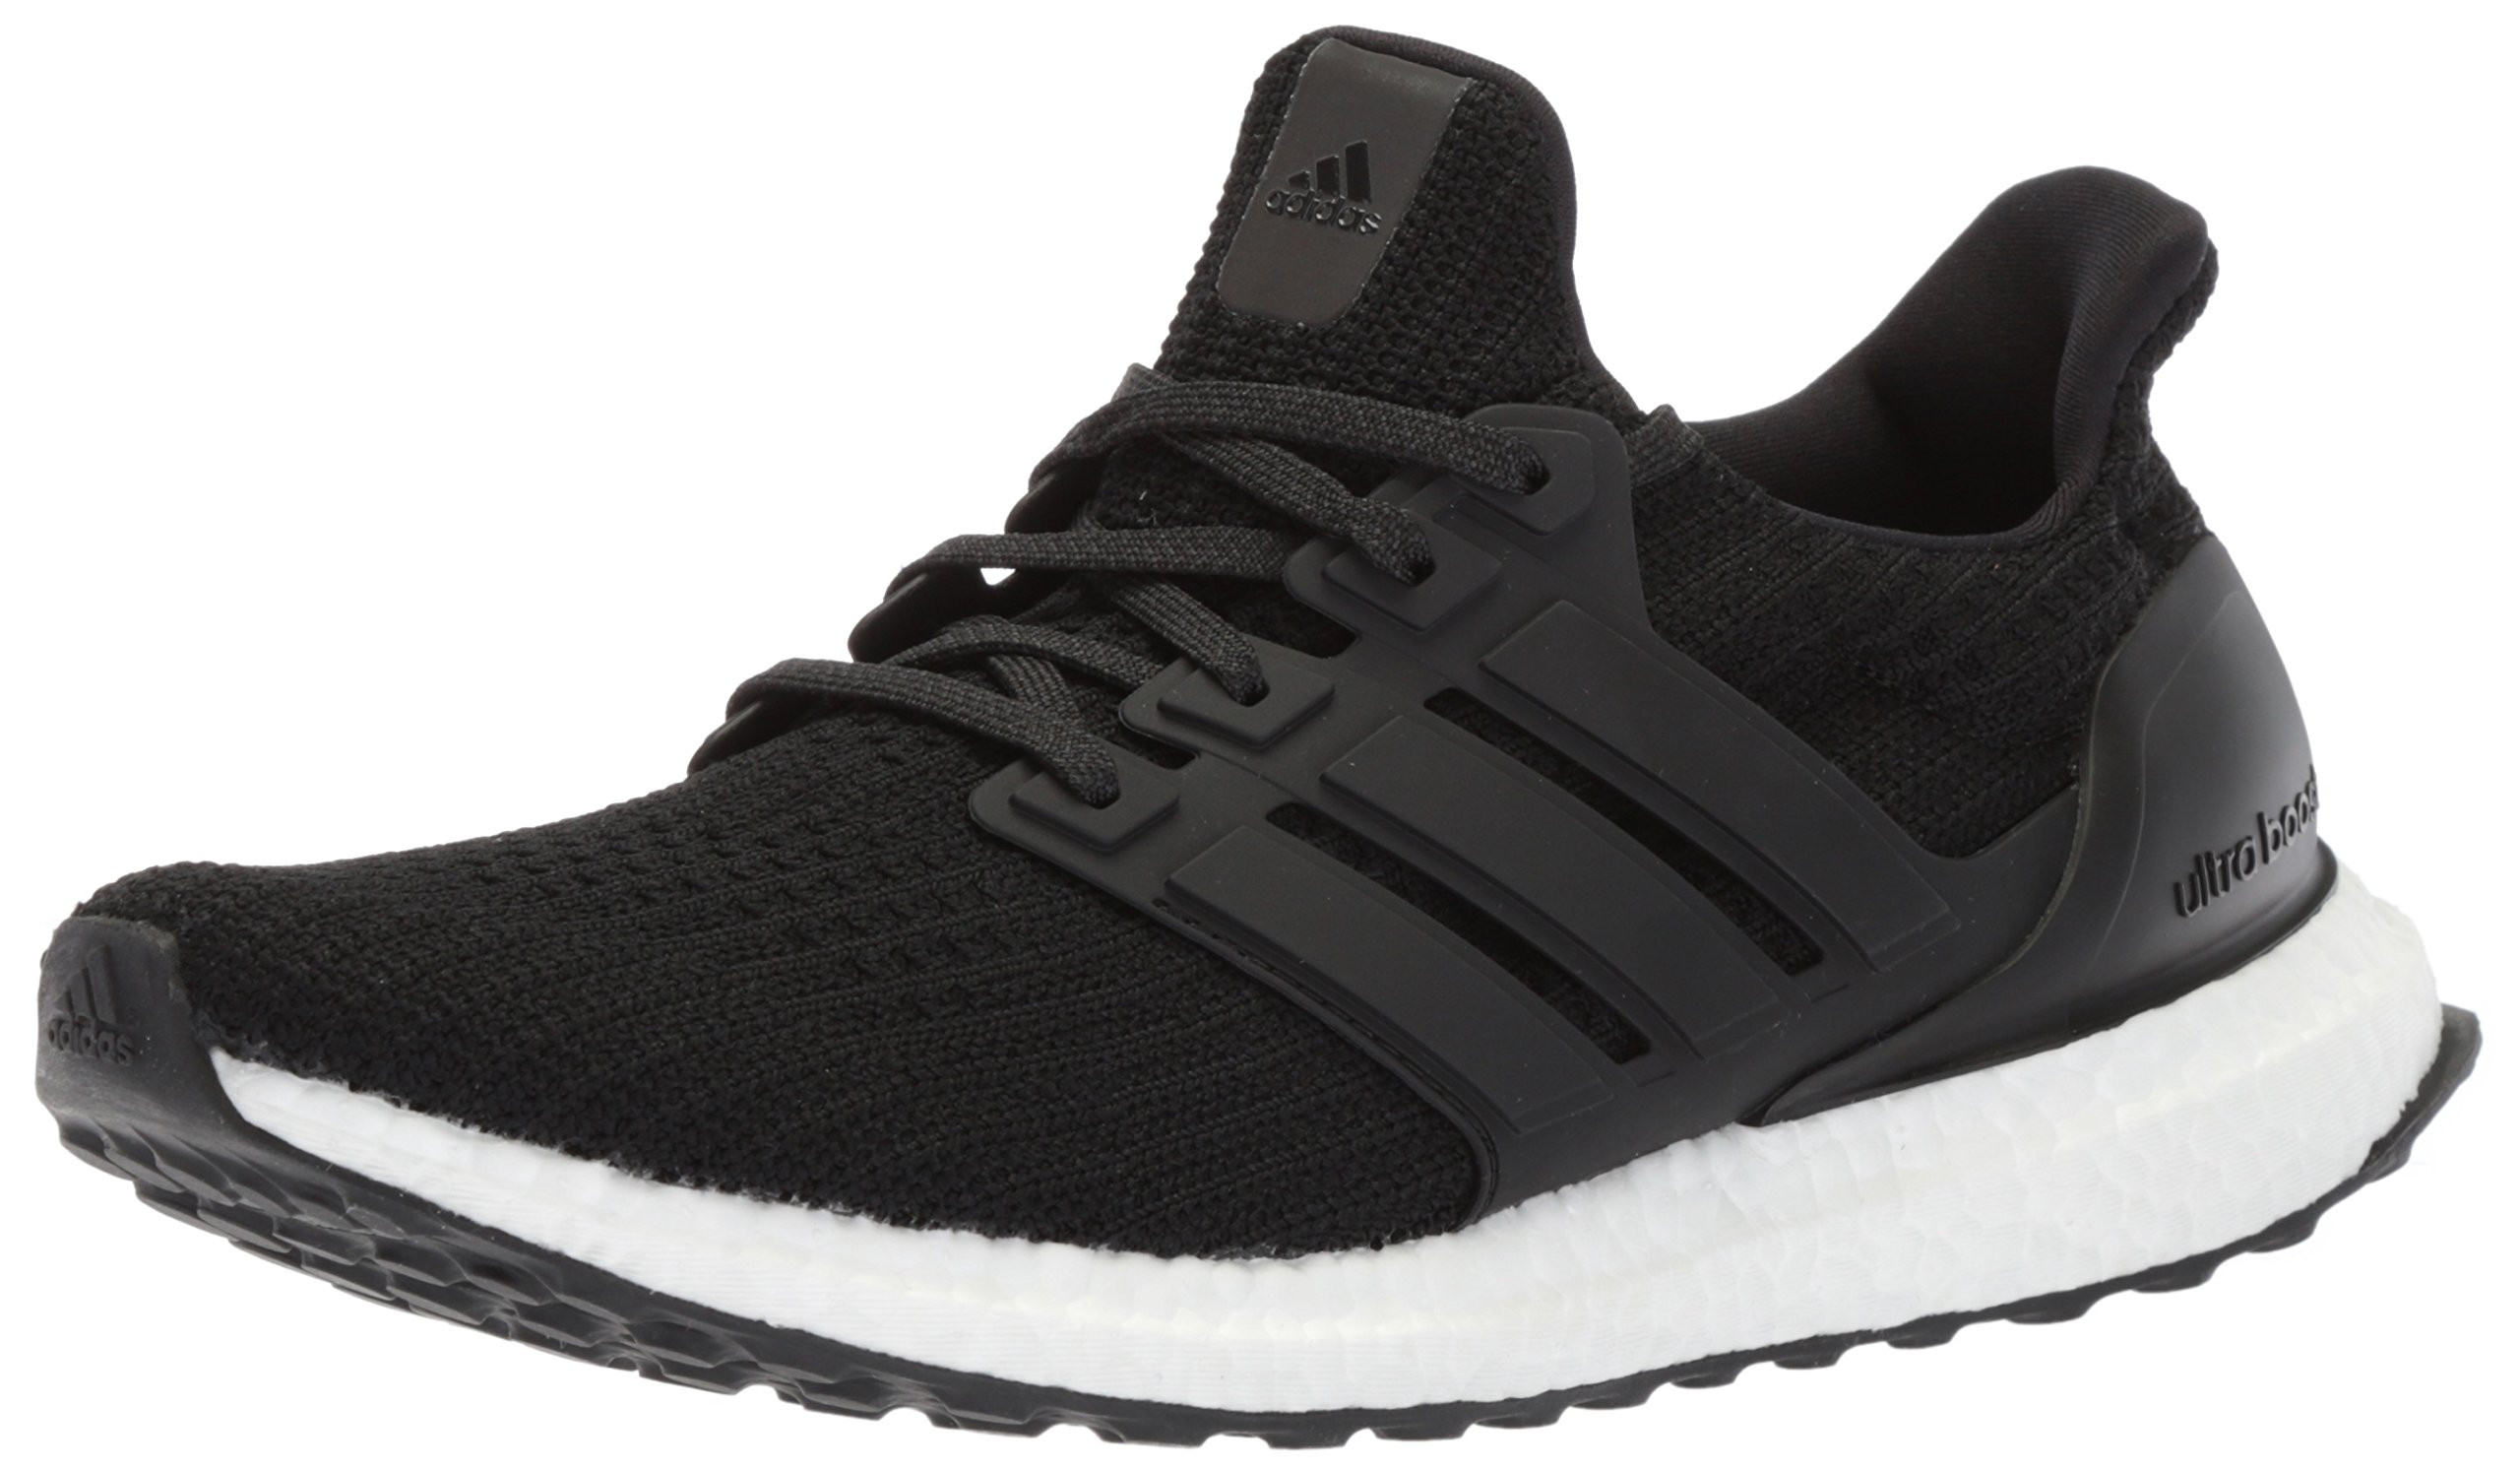 adidas Men's Ultraboost Road Running Shoe, Core BlackCore BlackCore Black, 9 M US